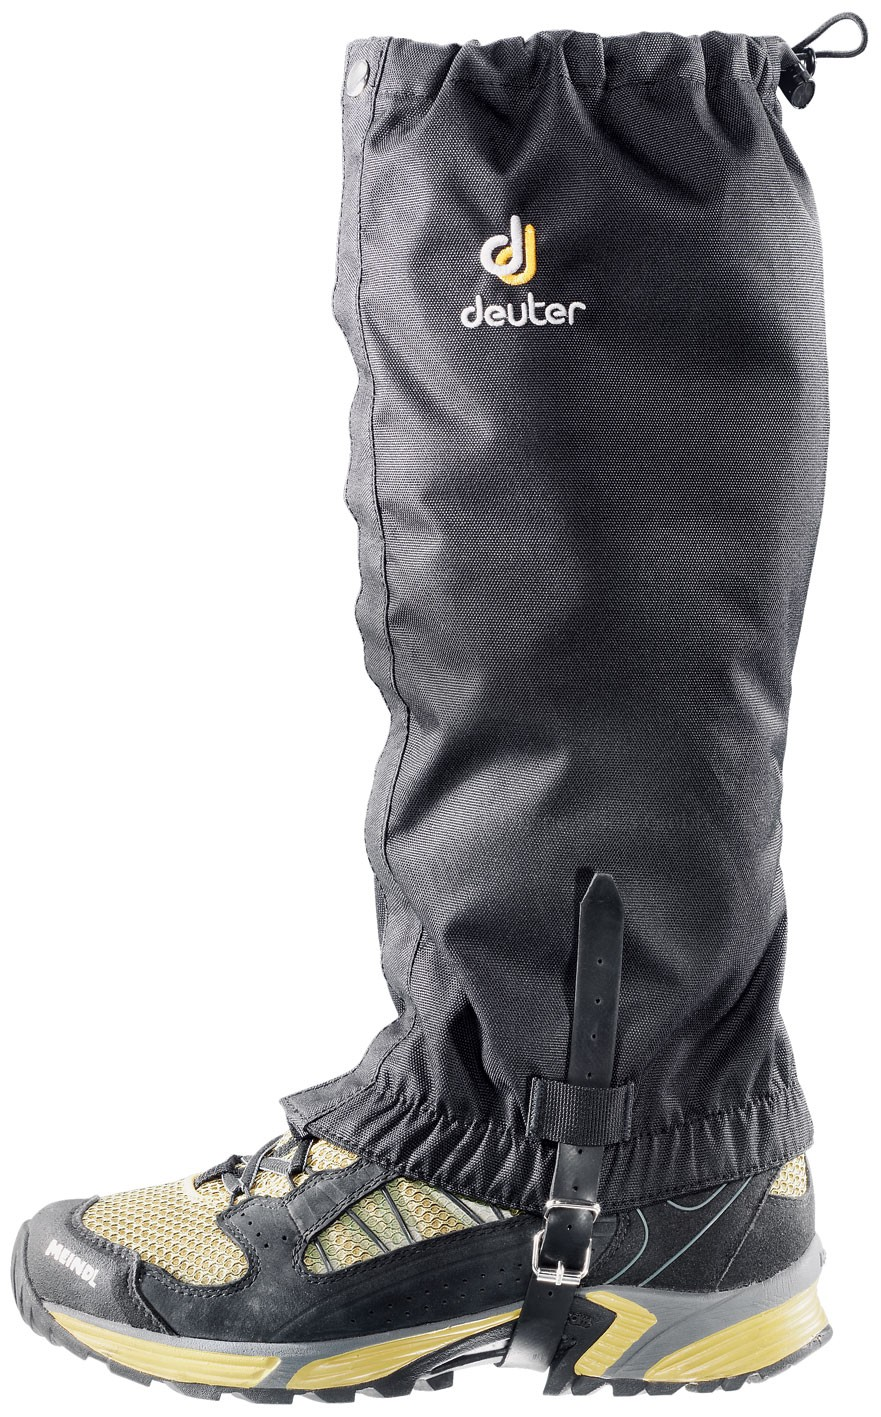 Deuter Boulder Gaiter Long